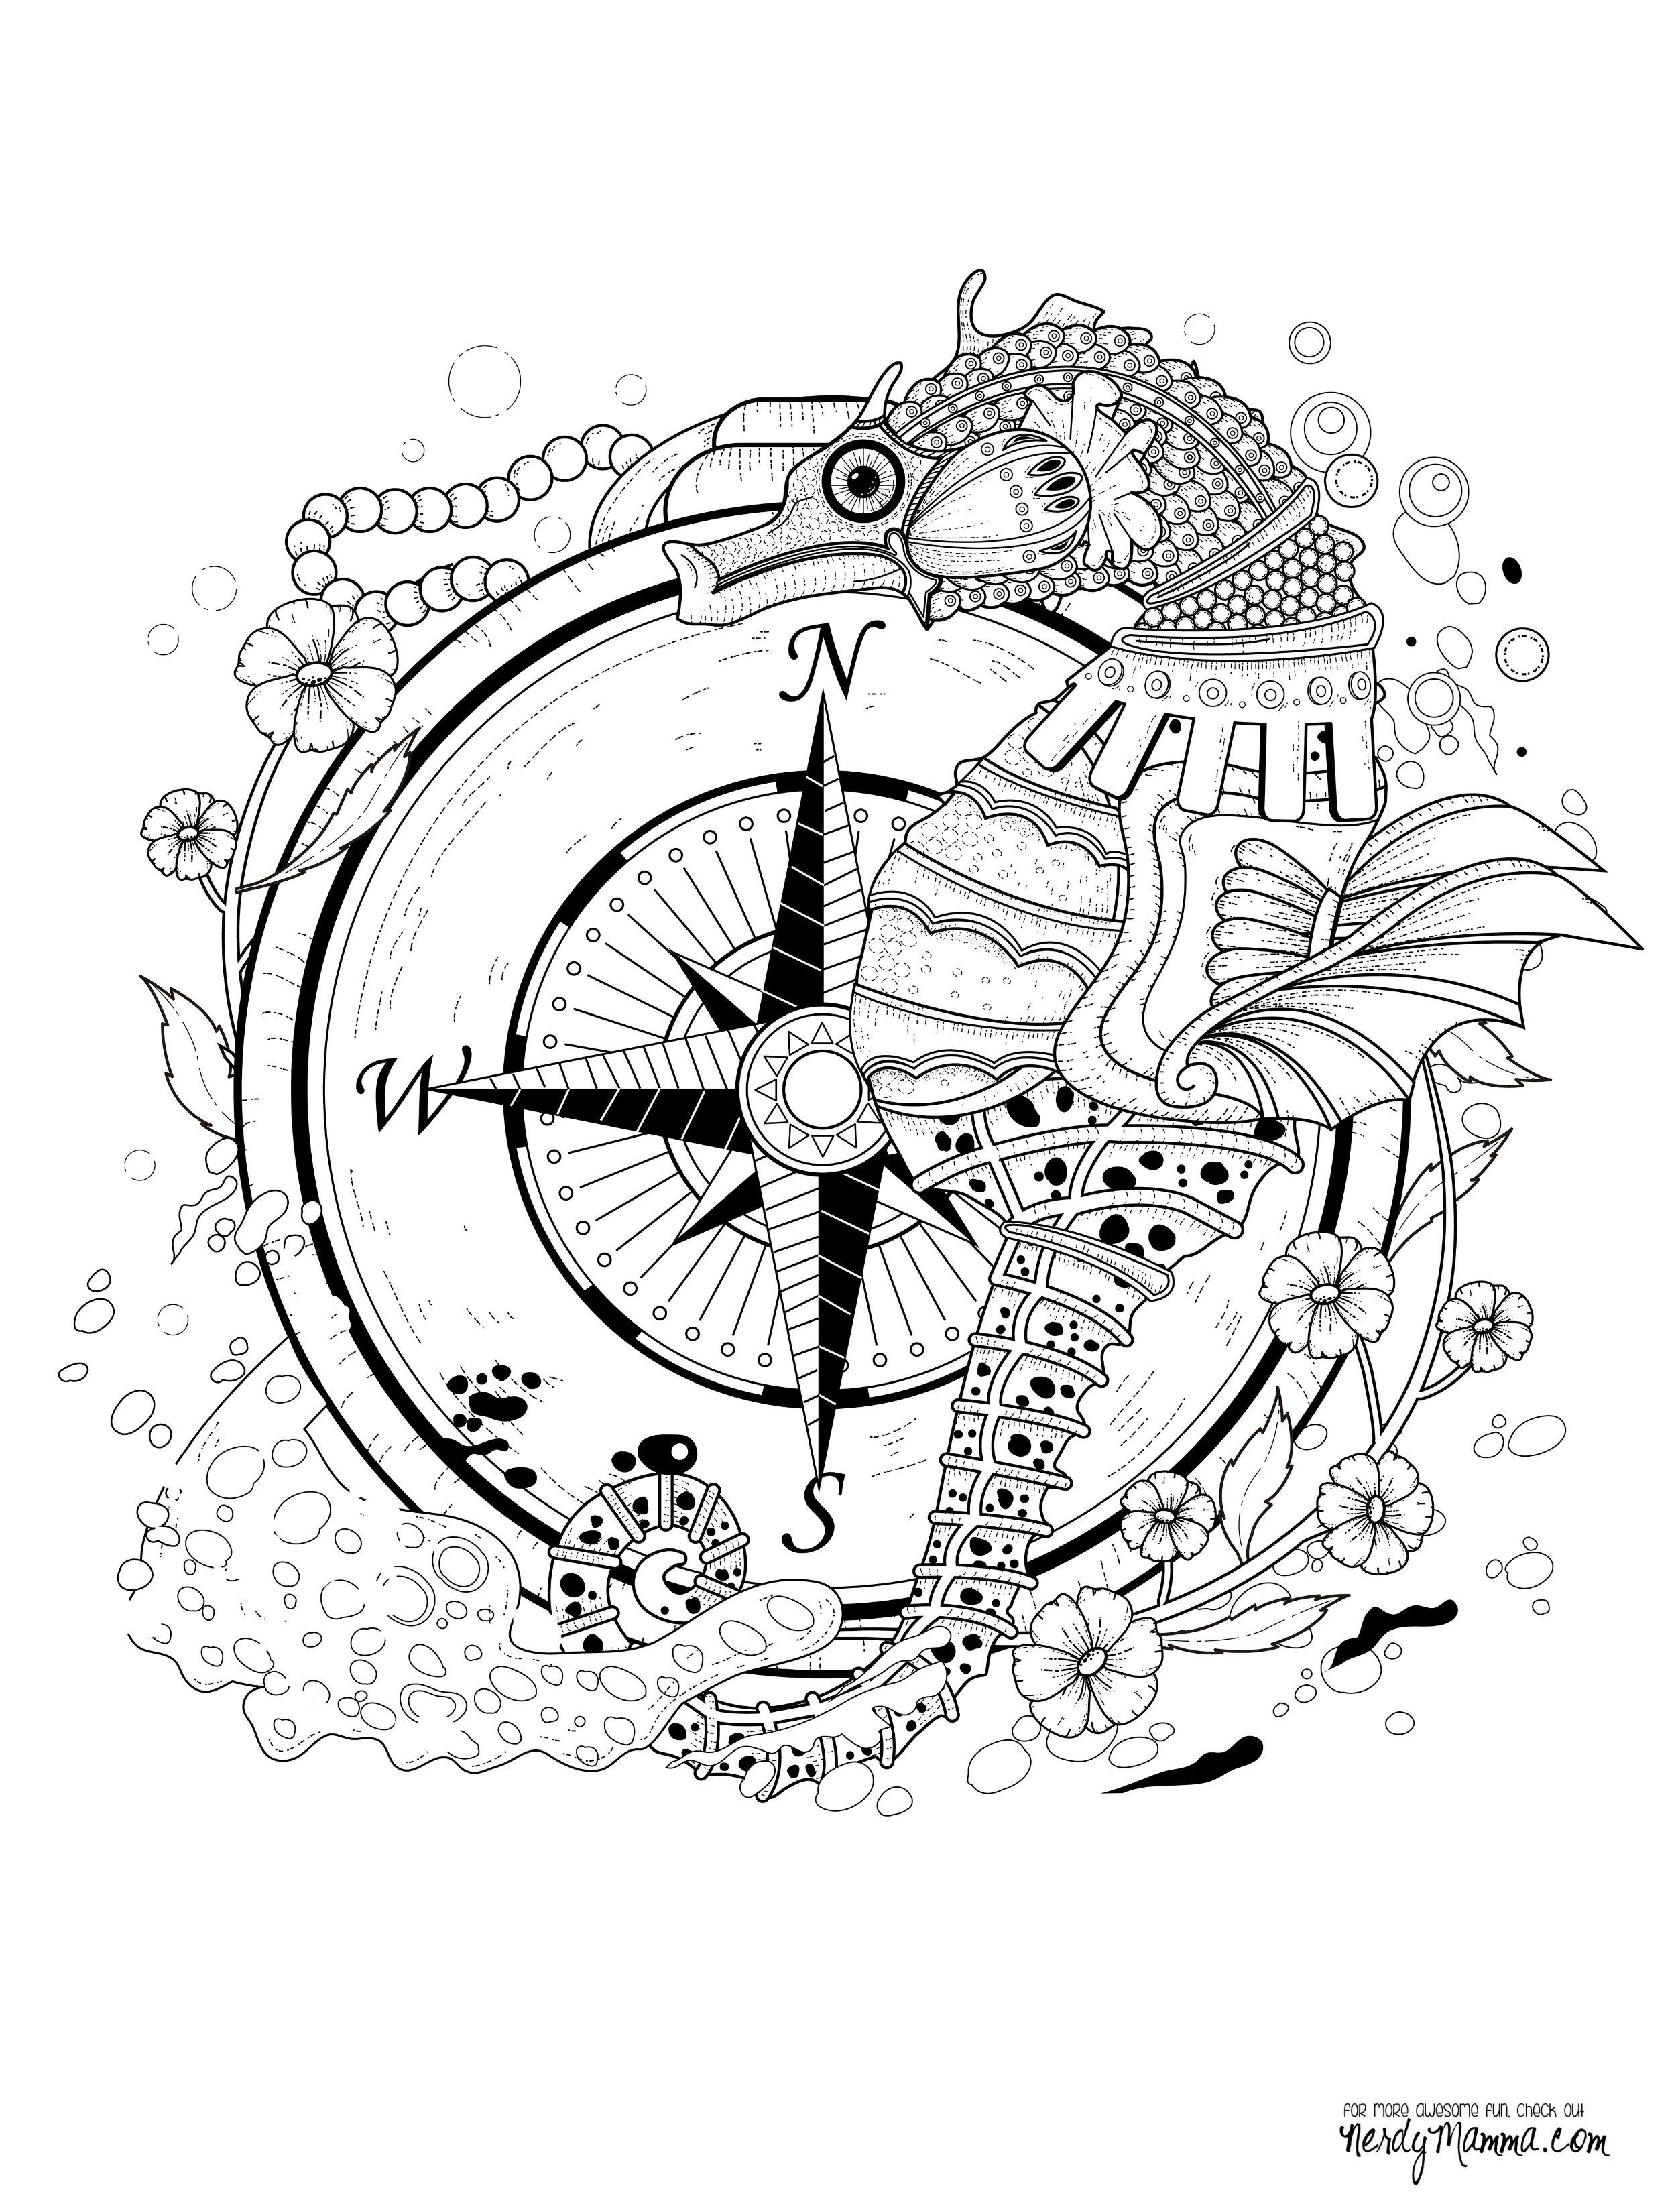 11 Free Printable Adult Coloring Pages Anti stress